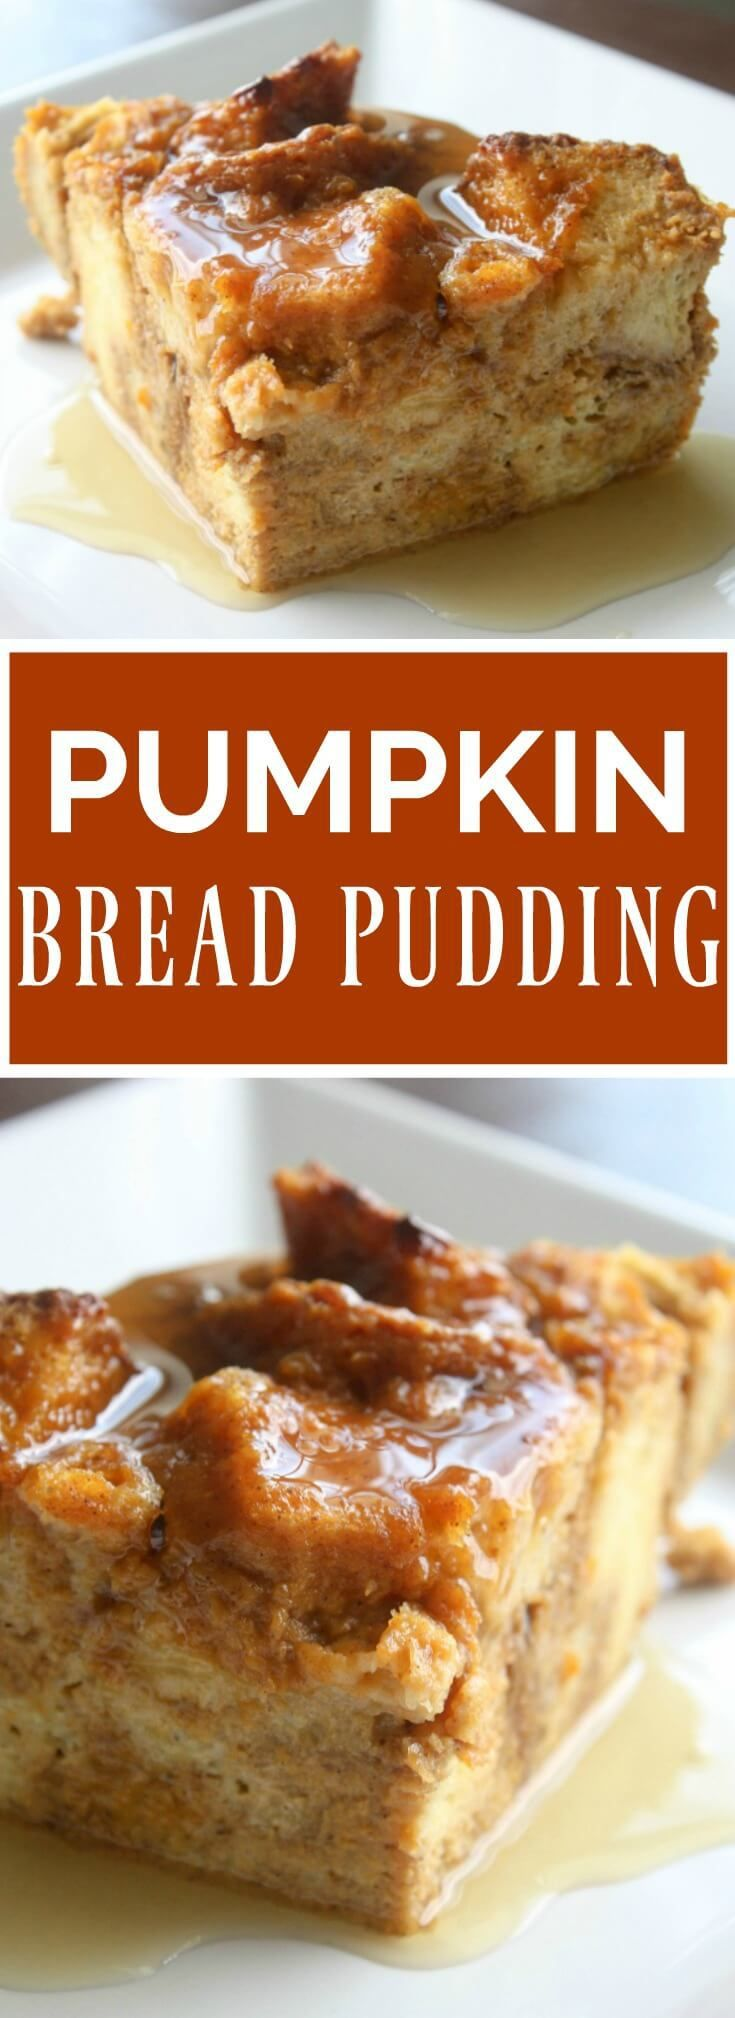 This recipe for Pumpkin Bread Pudding has all the flavors of pumpkin pie. Drizzled with warm maple syrup and served with vanilla ice cream. This will be your favorite Fall dessert.